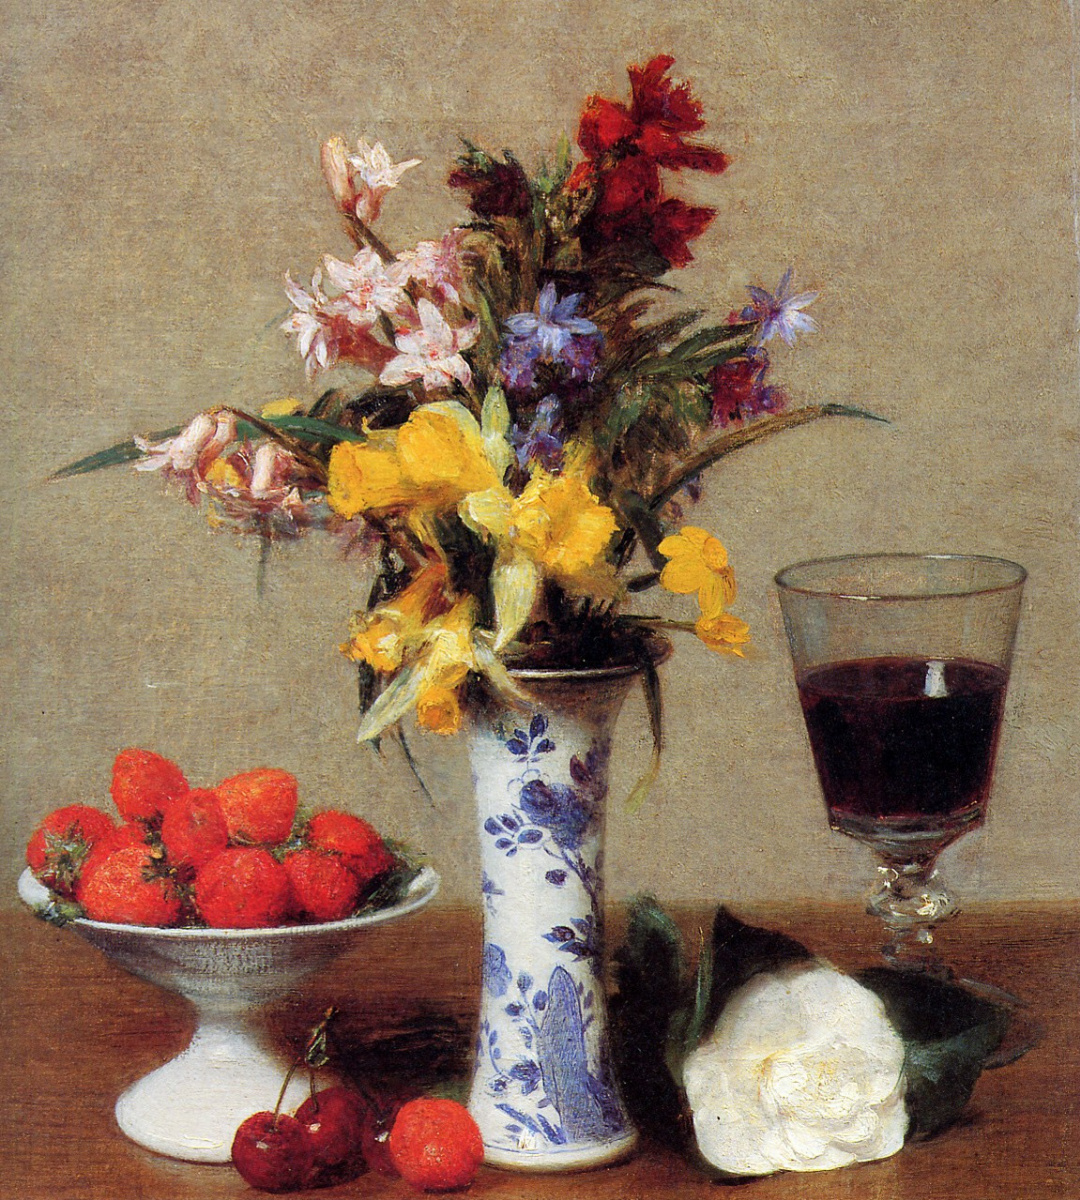 Henri Fantin-Latour. Still life with glass of wine and strawberries